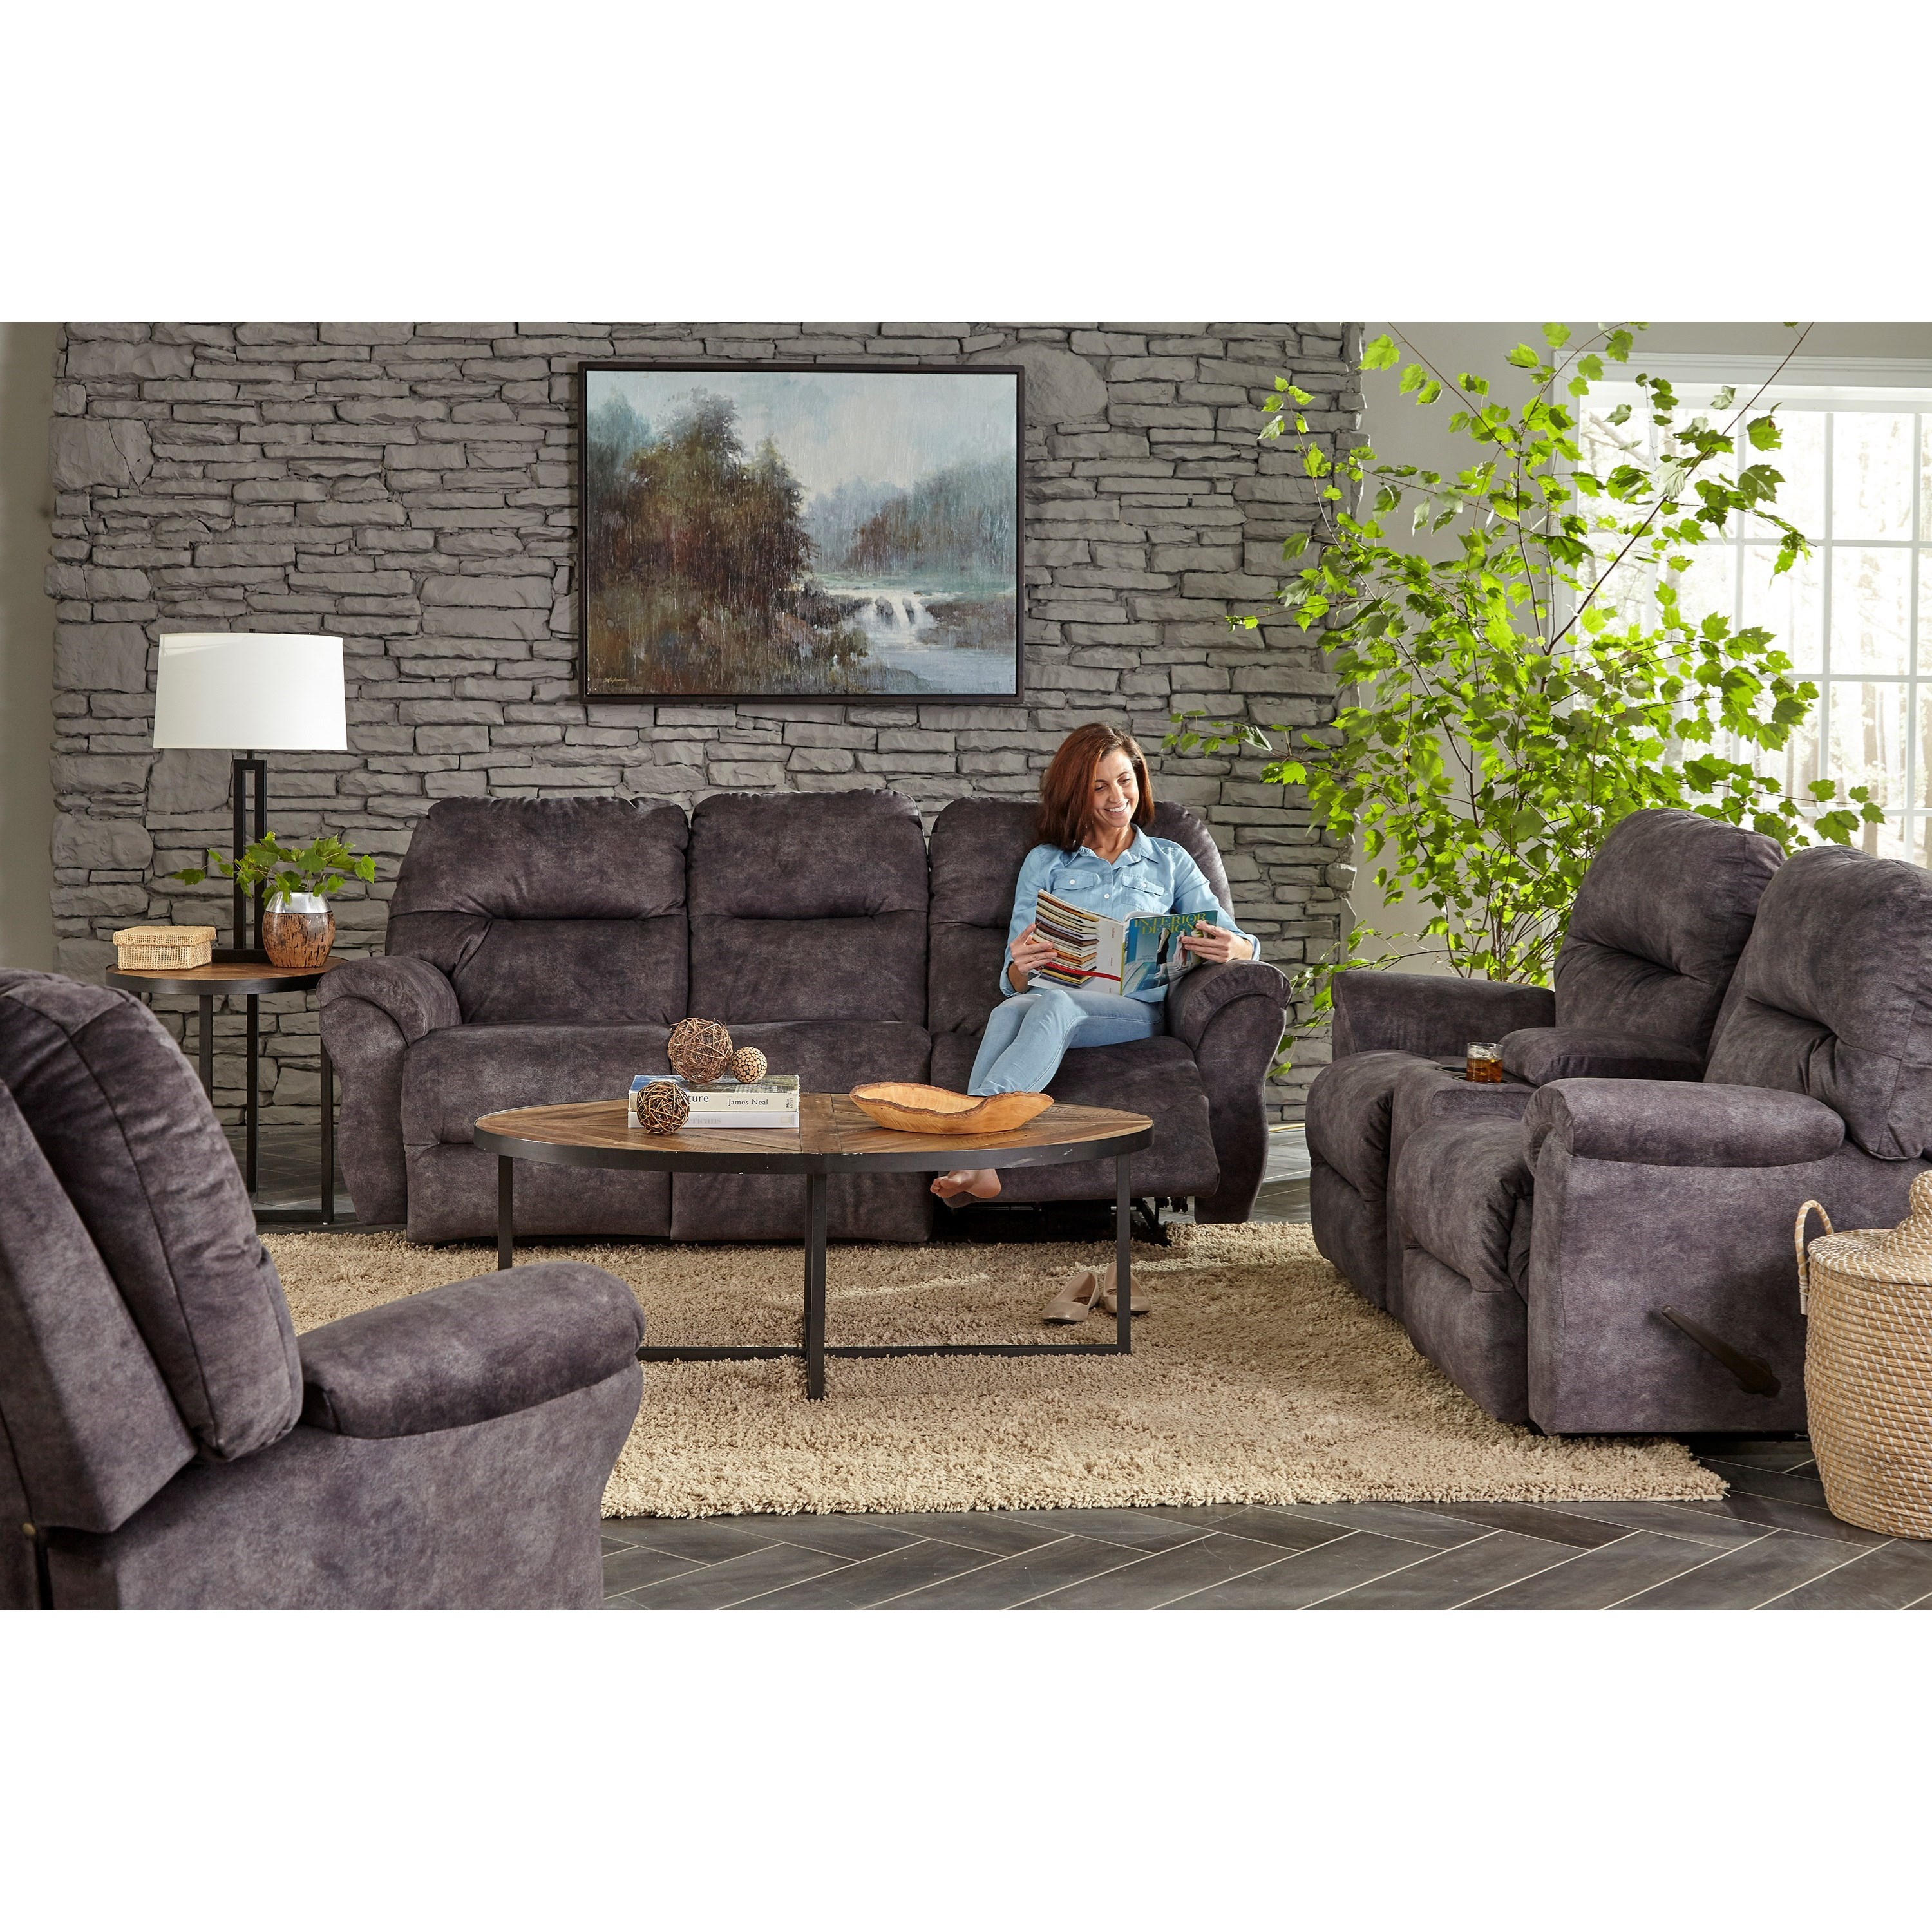 Rocking Reclining Loveseat With Storage Console By Best